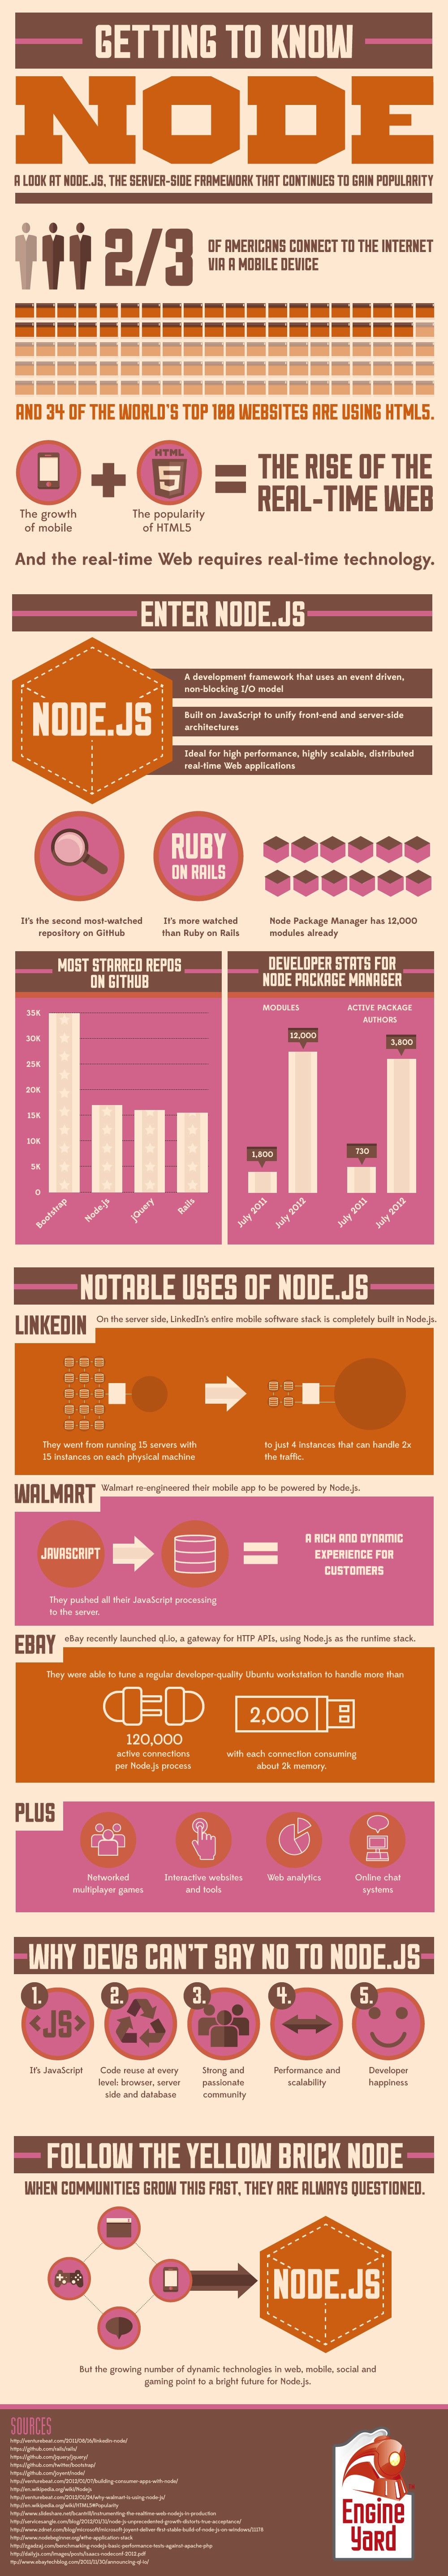 All About Node Js You Wanted To Know ? - codeburst